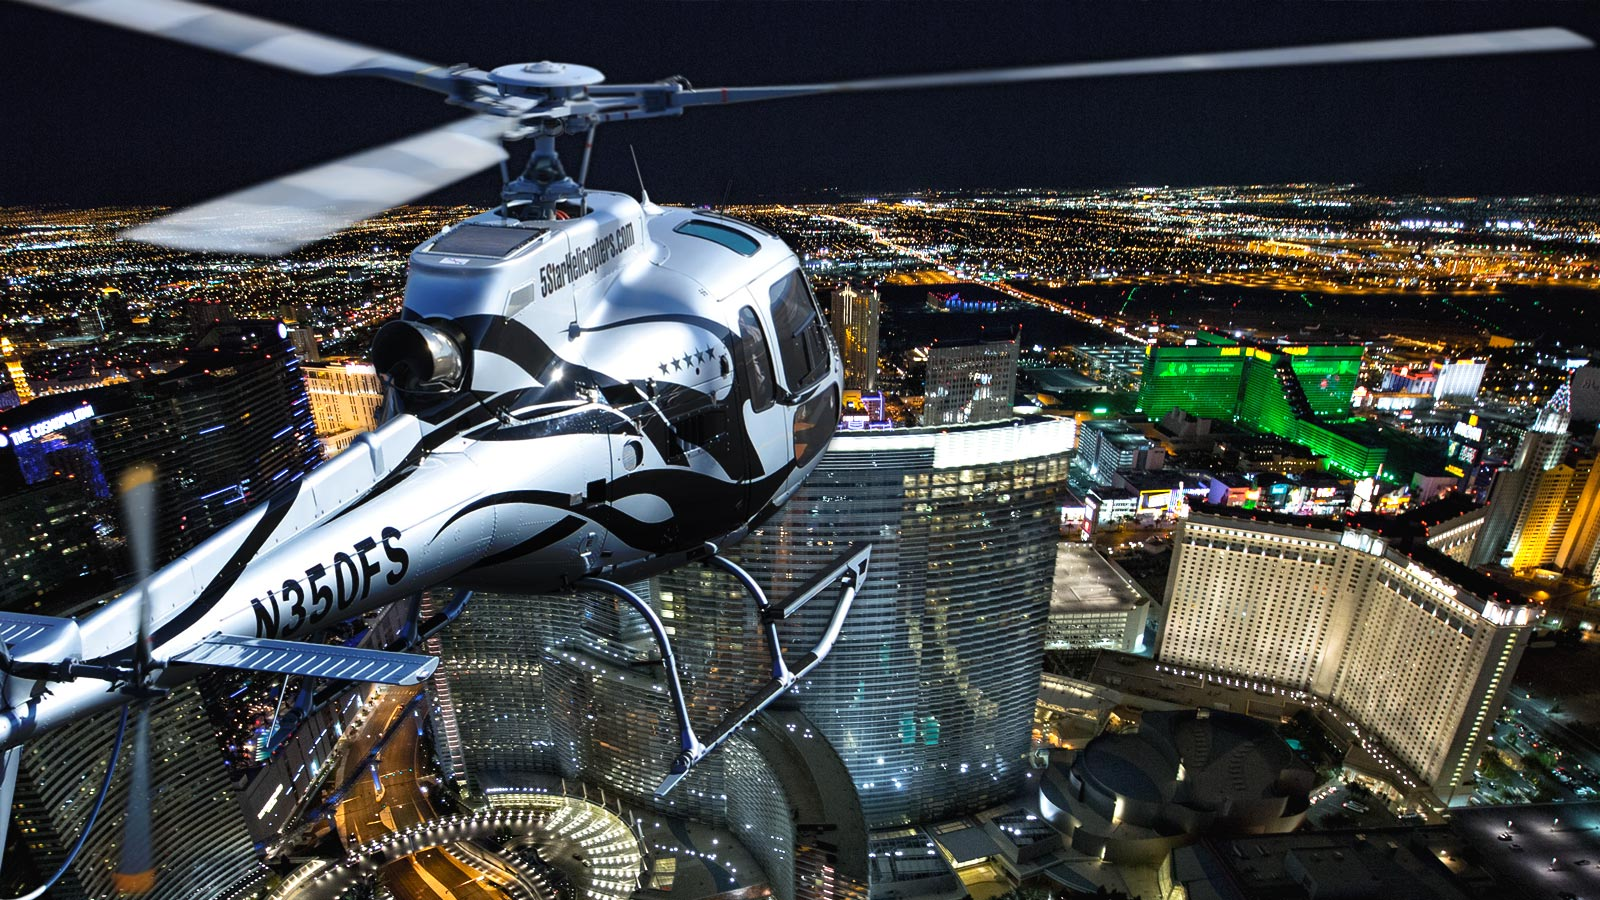 Las Vegas VIP Night Strip Helicopter Flight – $149